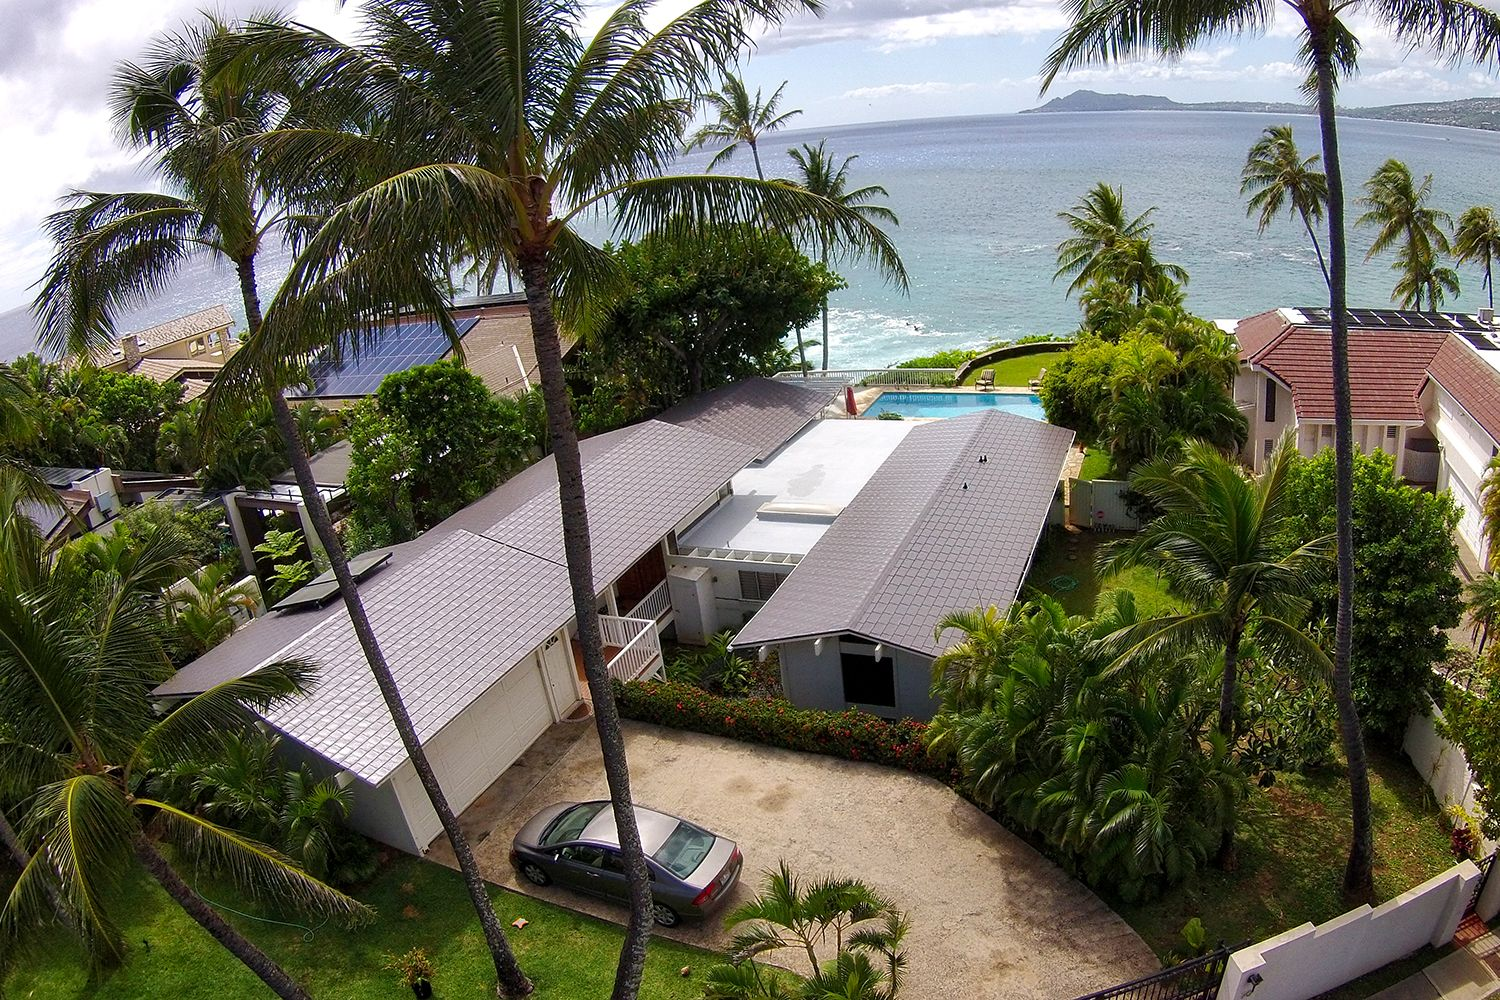 grey metal slate roof hawaii ocean beach palm trees